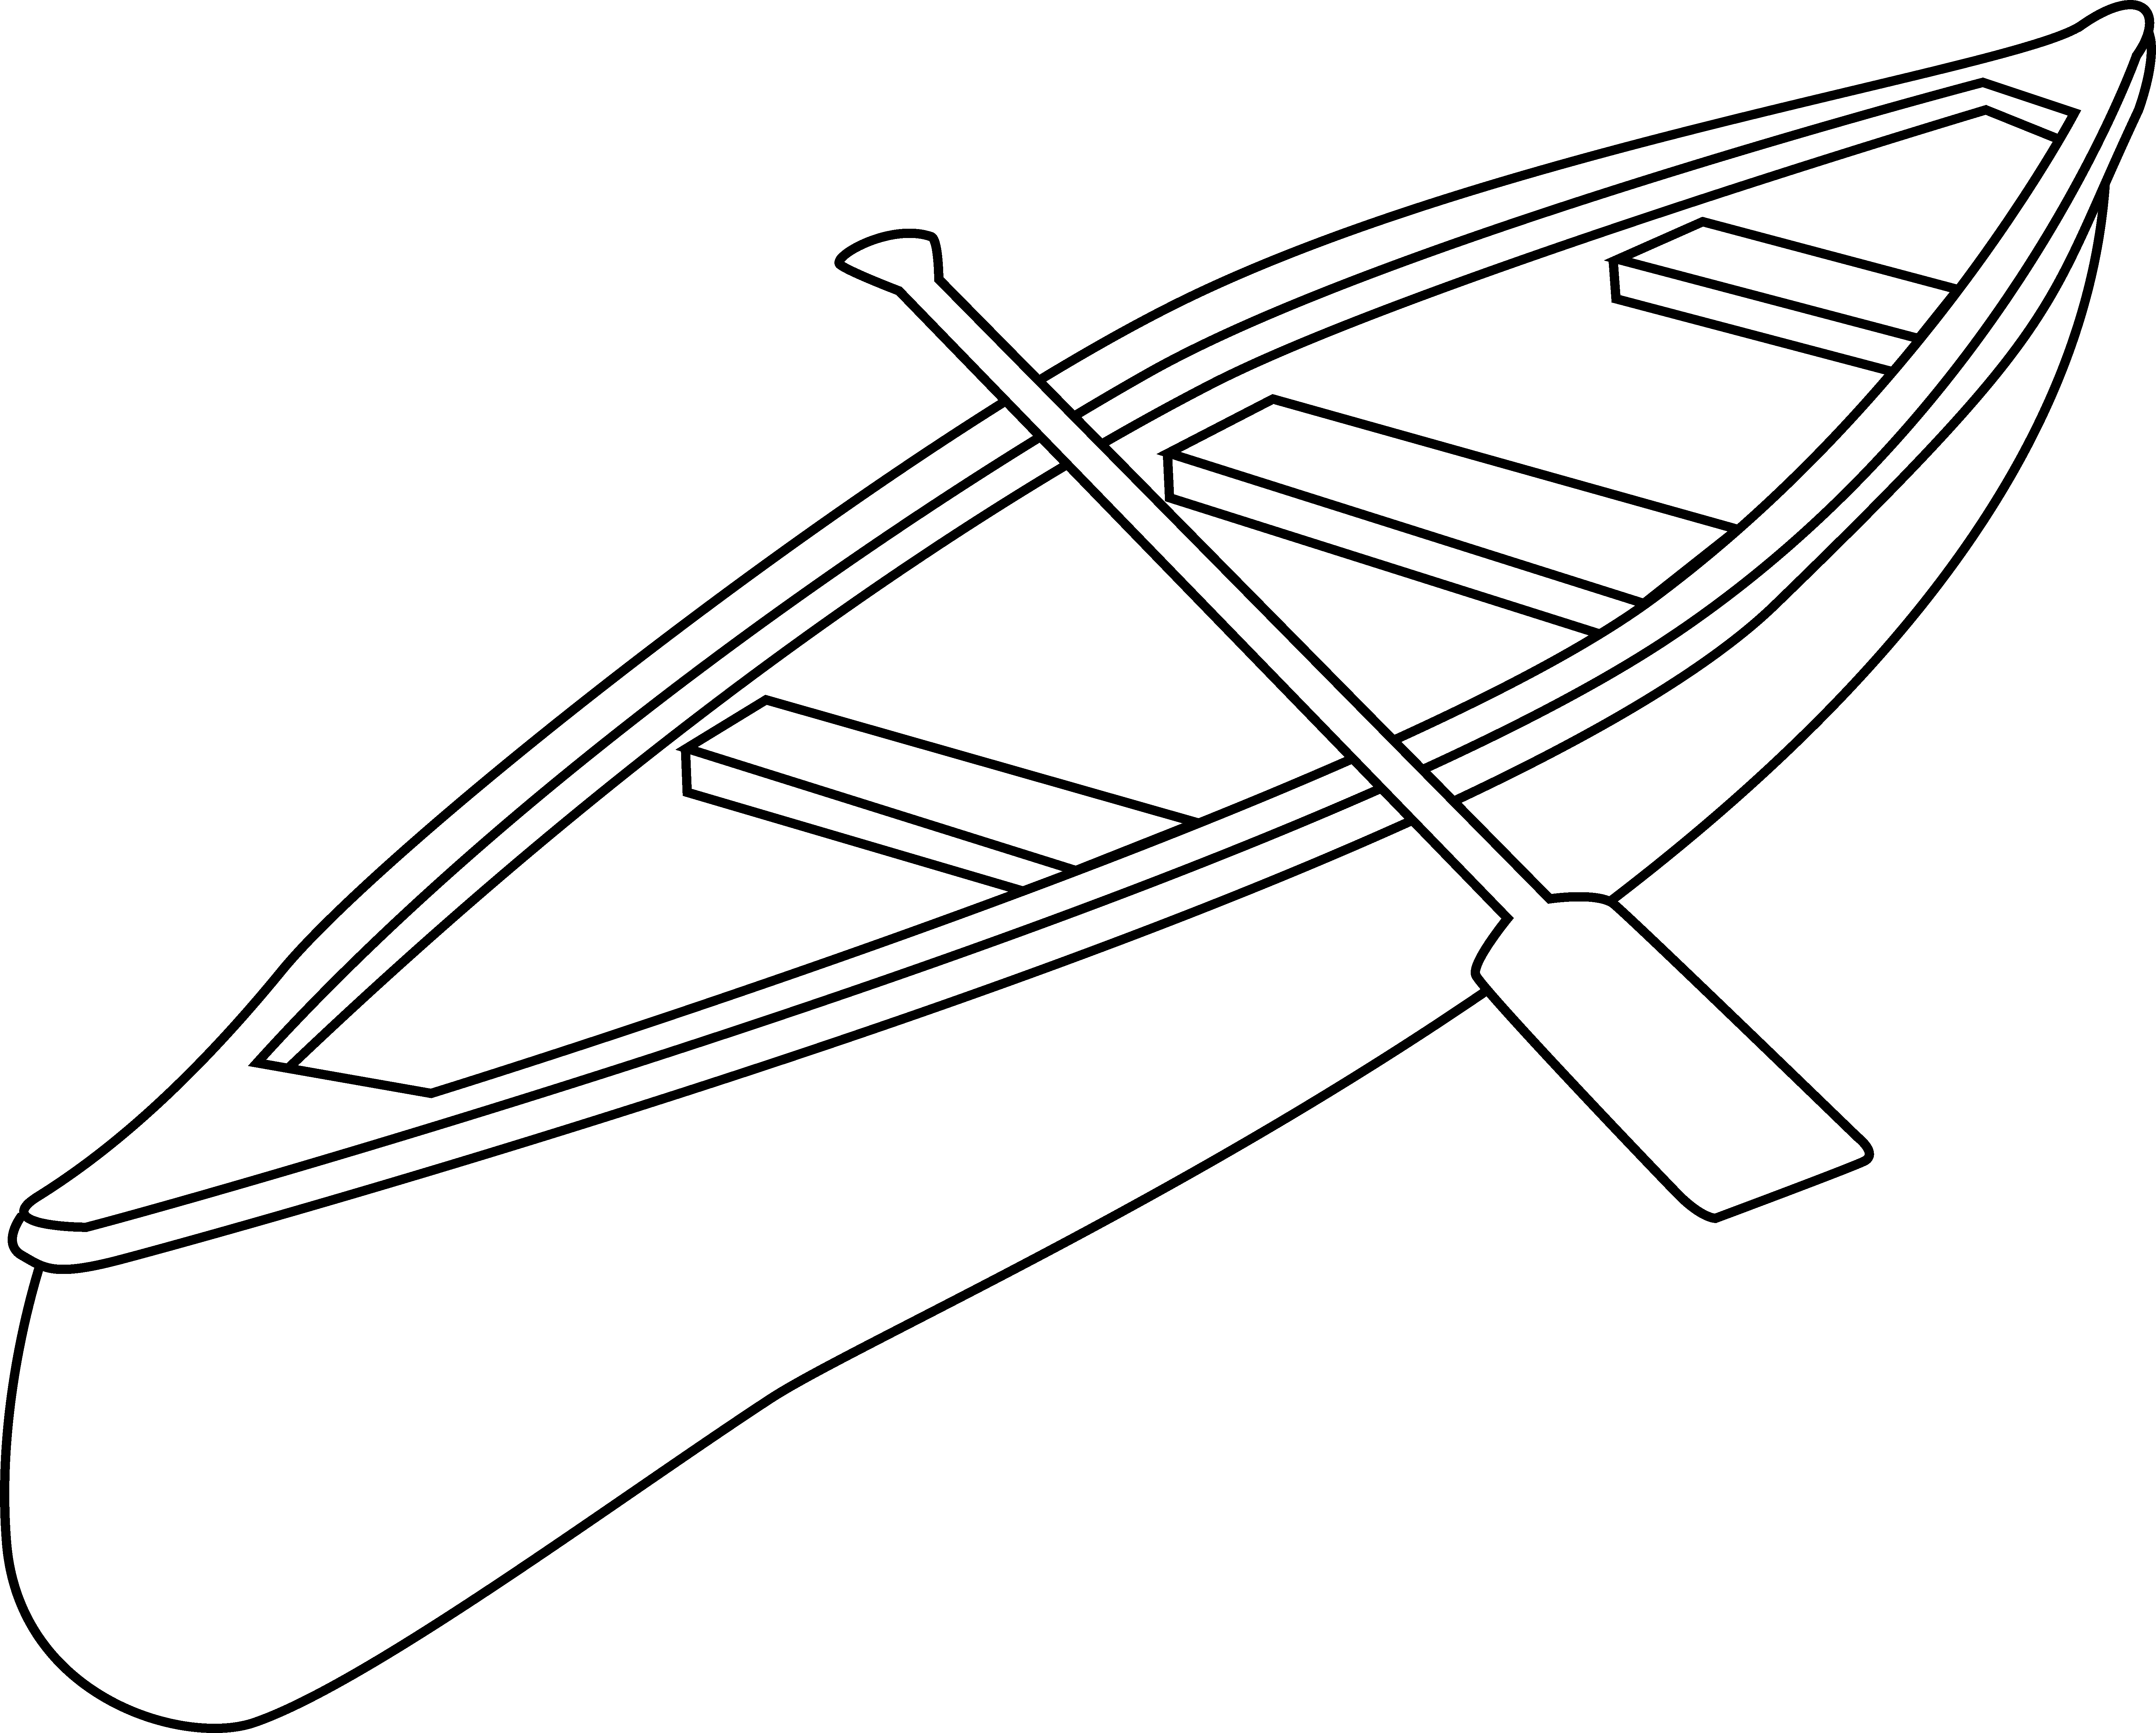 Canoeing clipart black and white